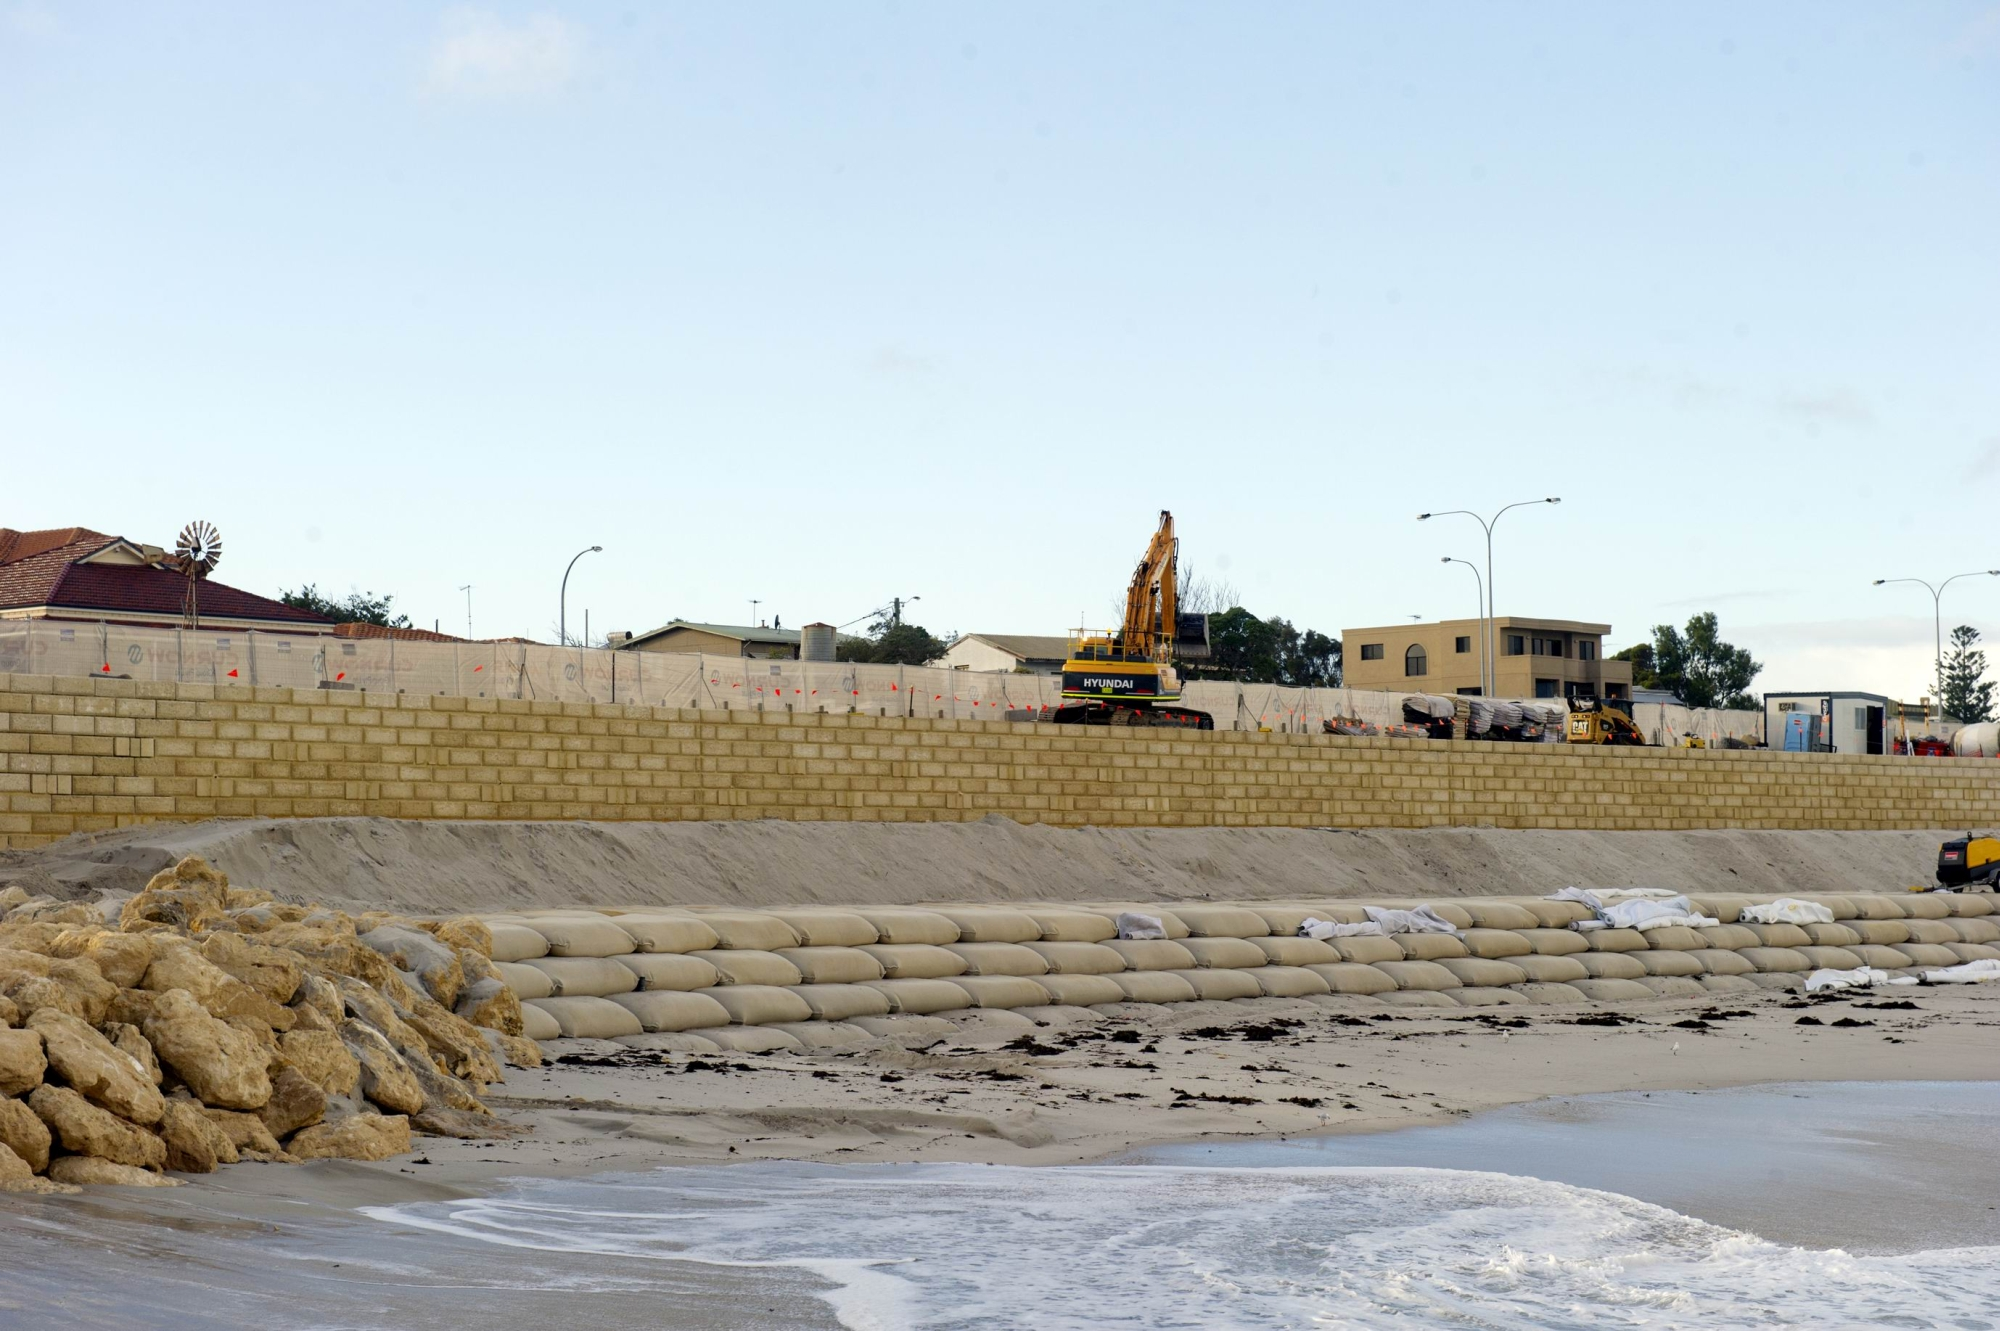 Progress at Quinns Rocks foreshore this week. Picture: Emma Goodwin.